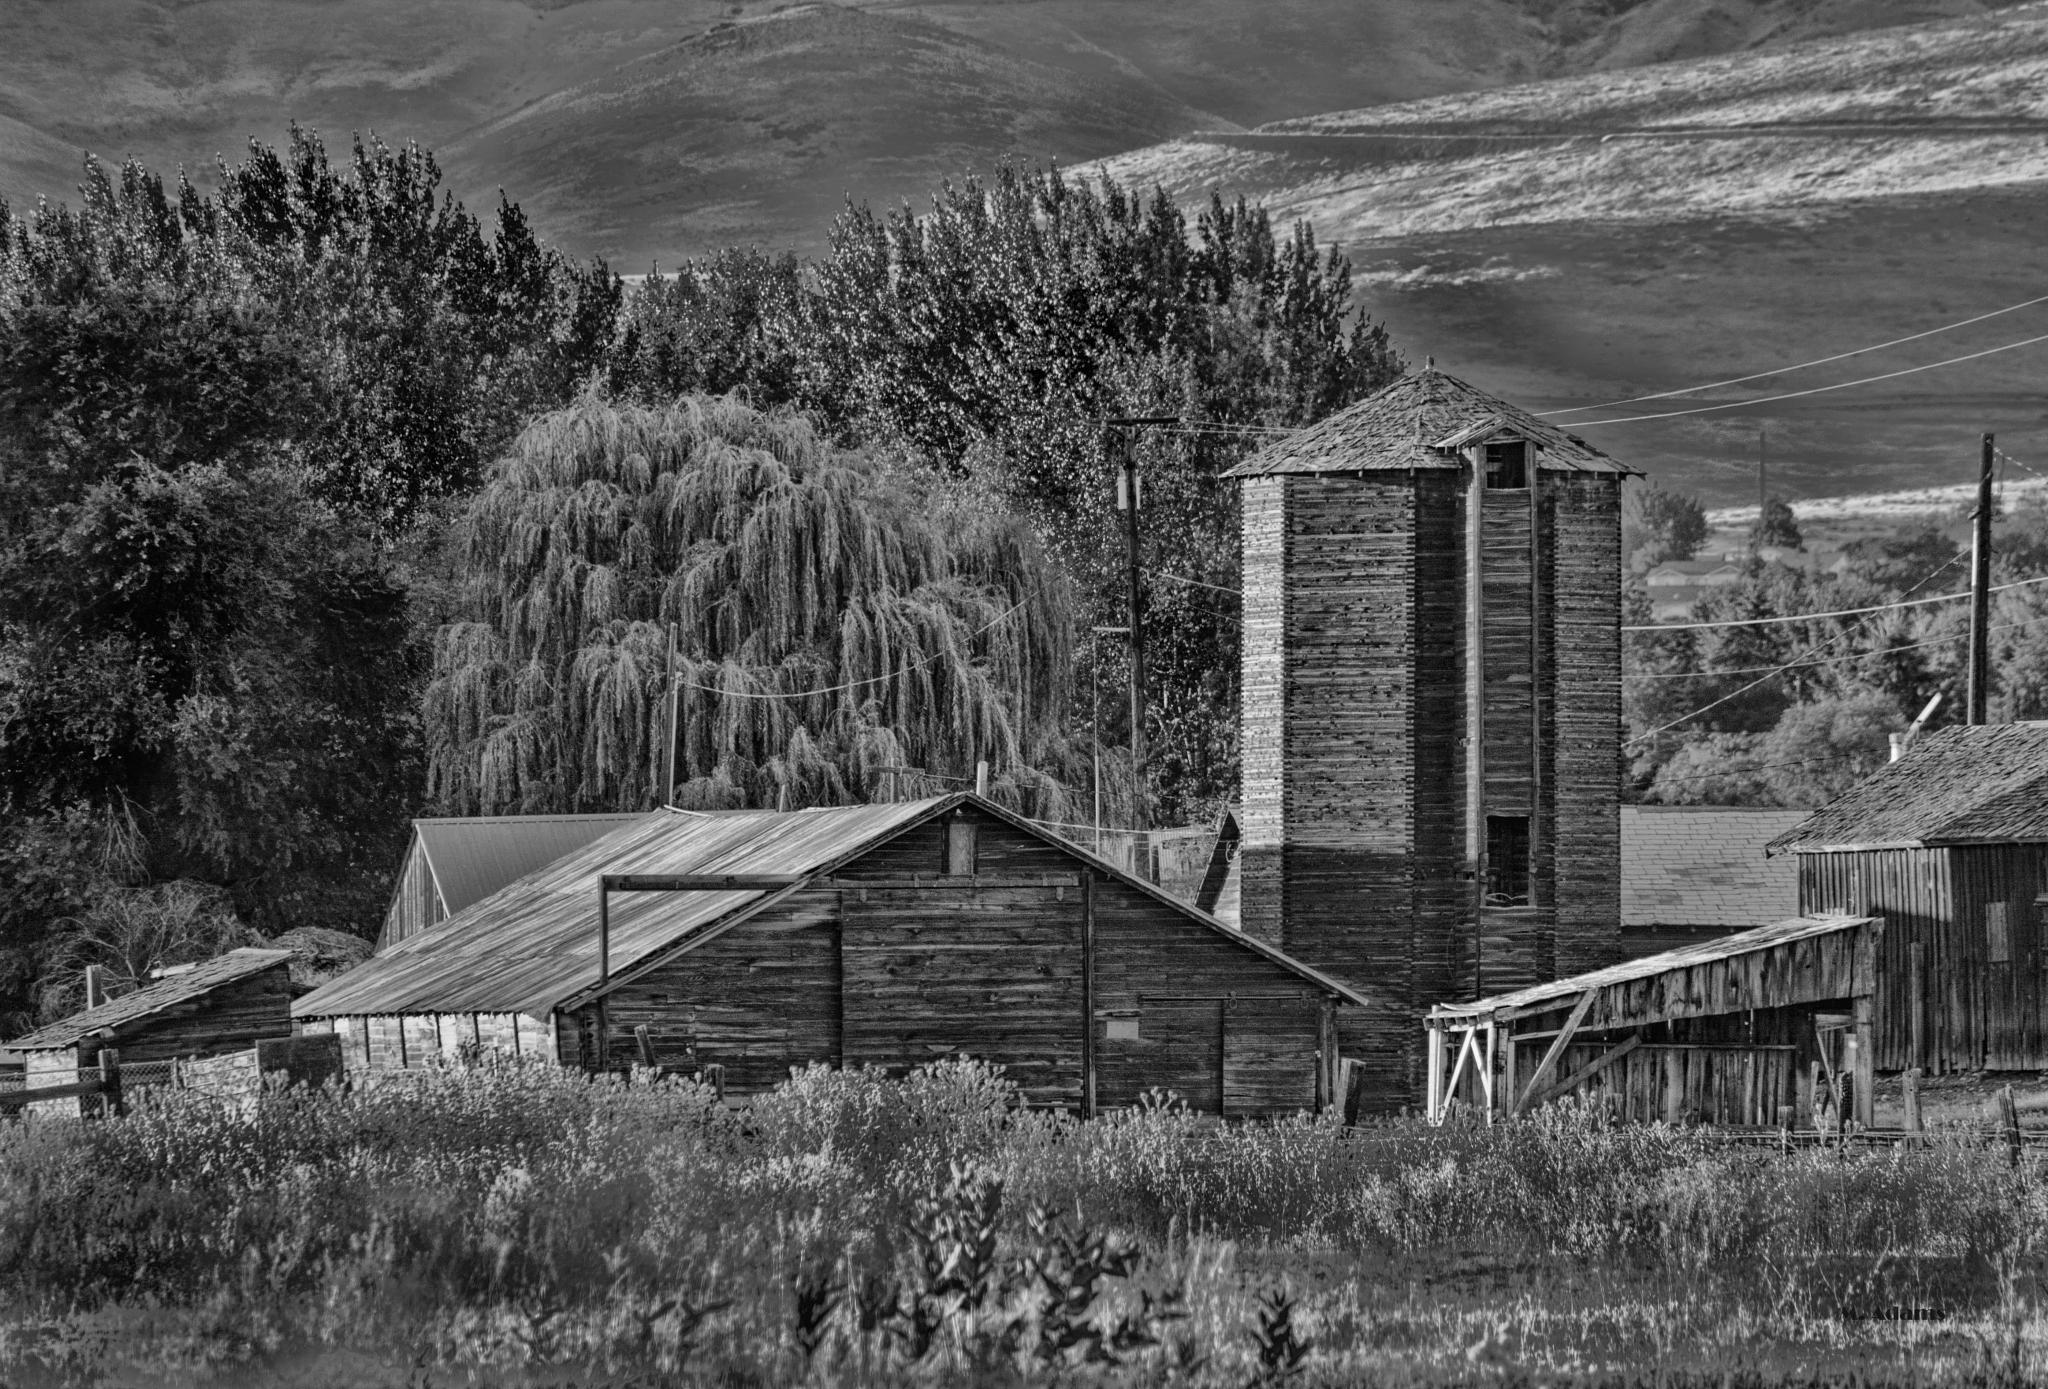 Farm in the Valley by Mike Adams